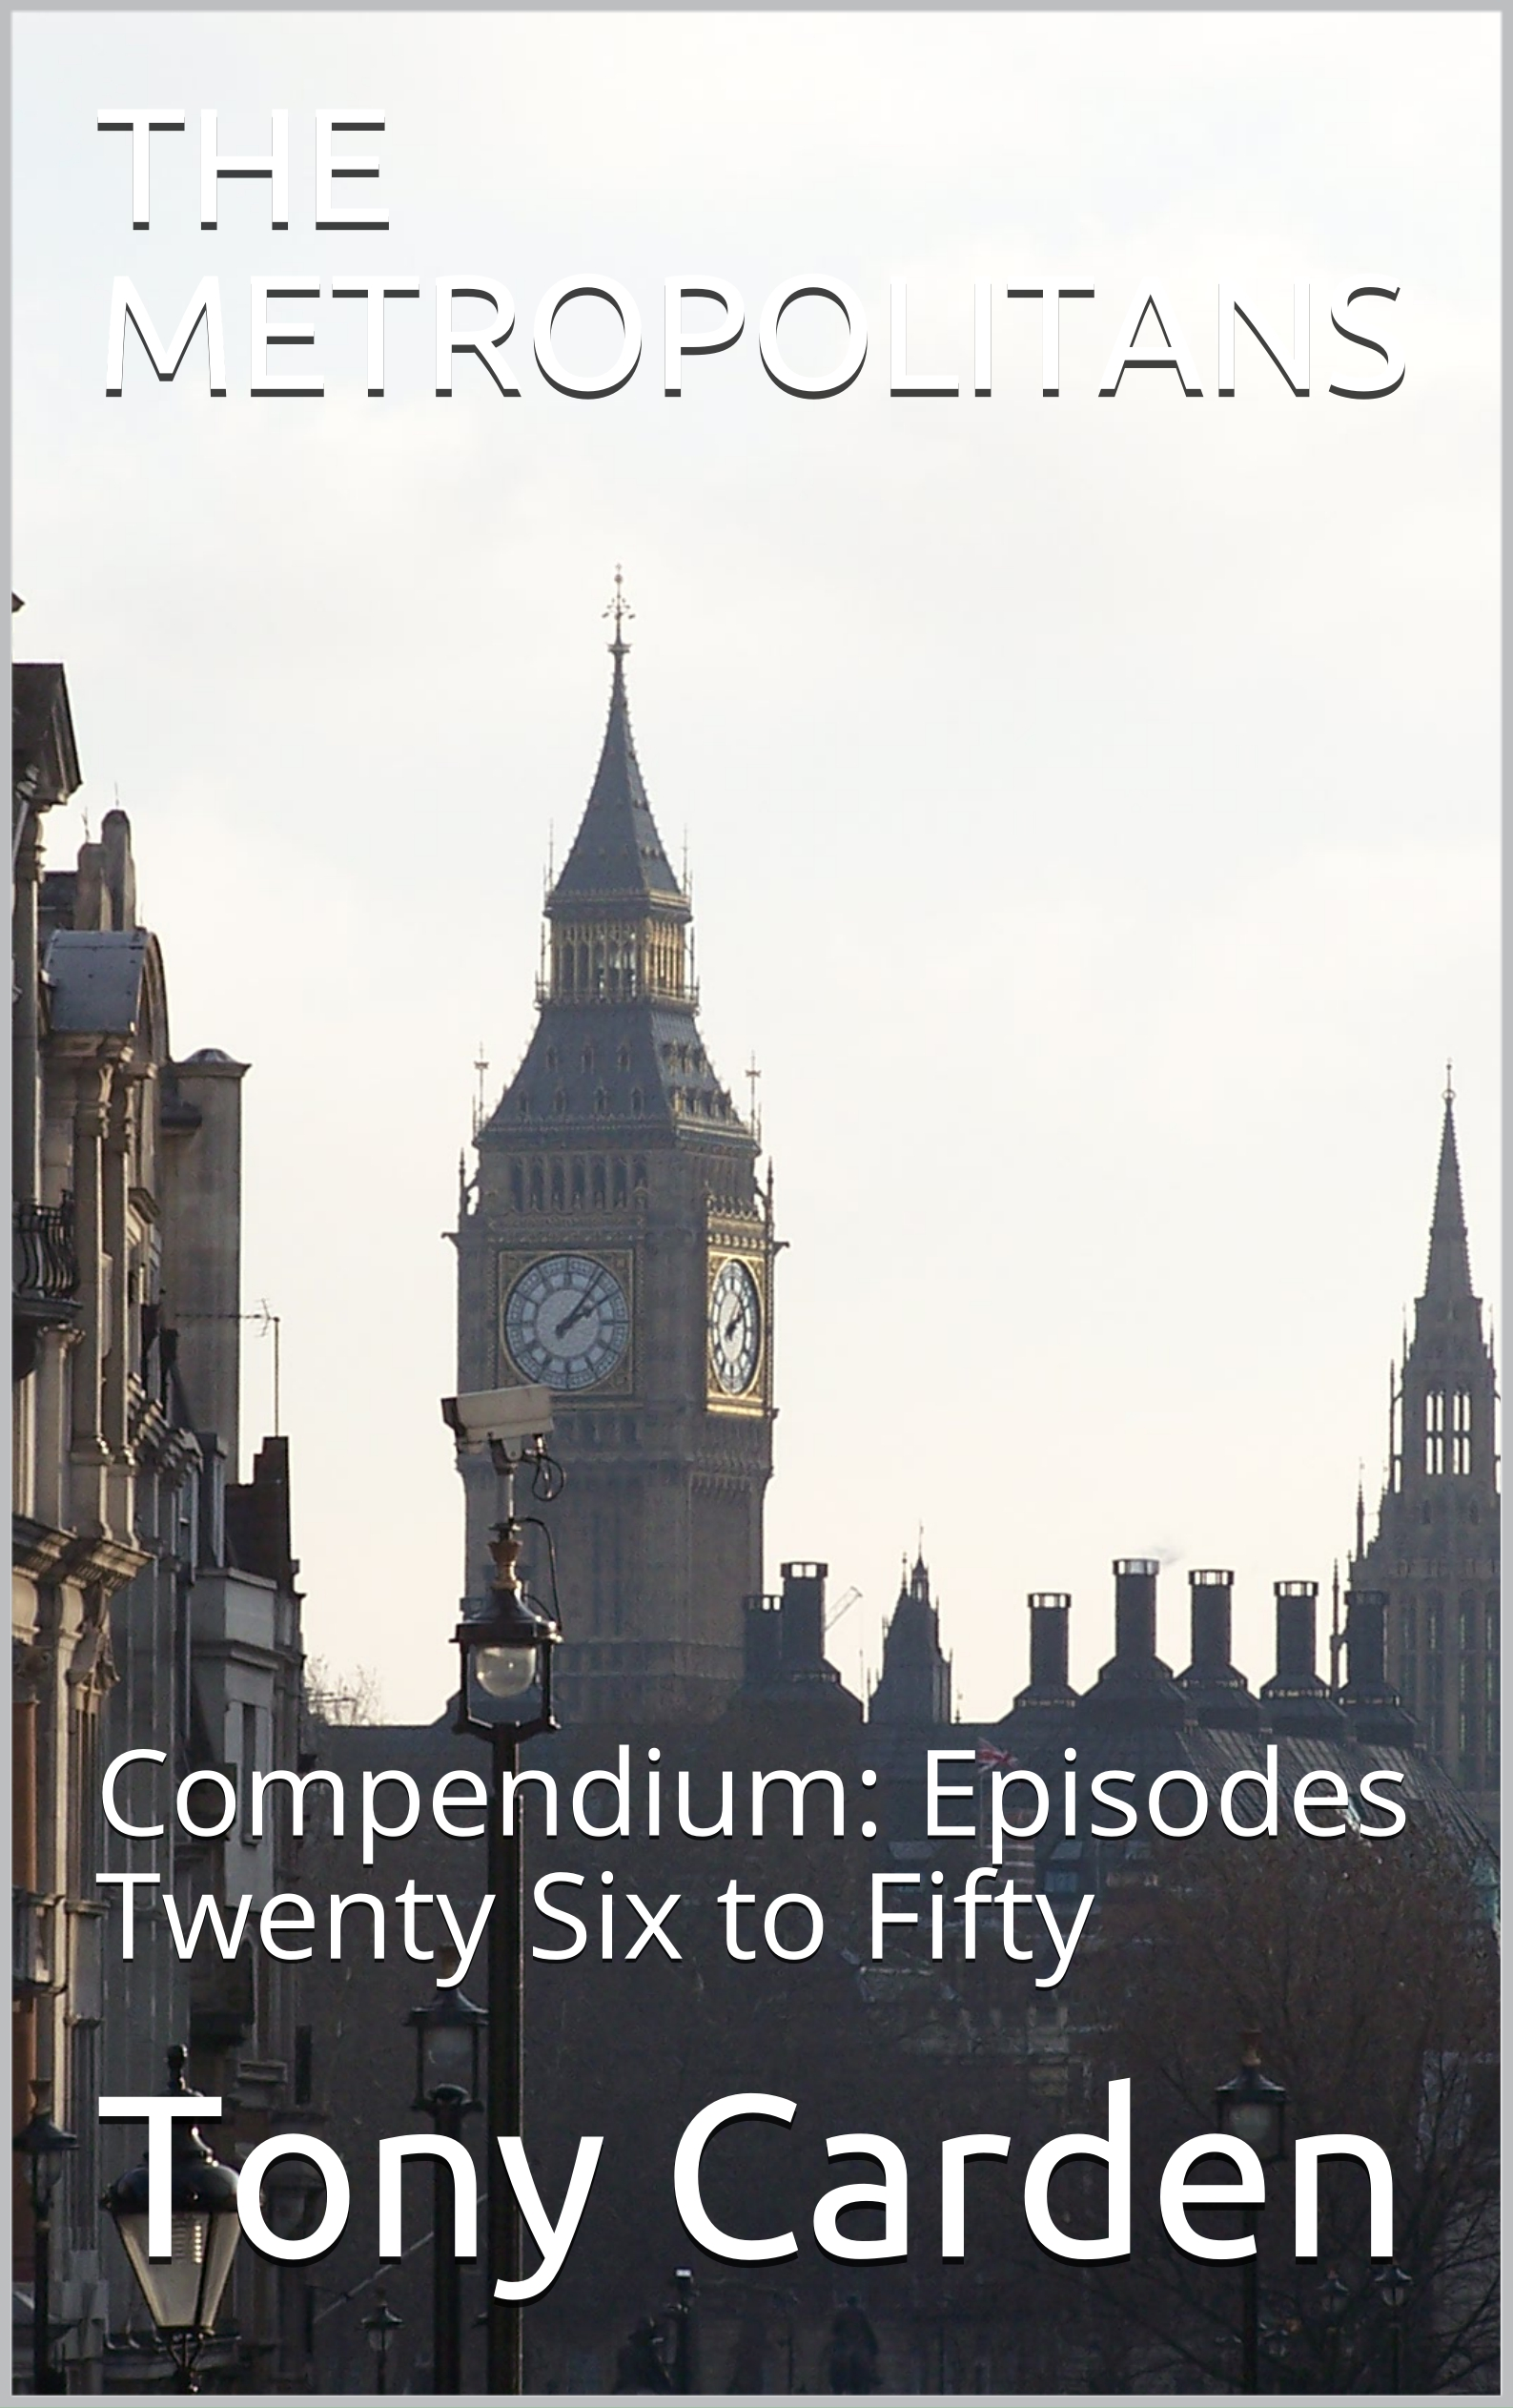 the metropolitans - This is the second compendium of episodes 26 to 50 of the serial.